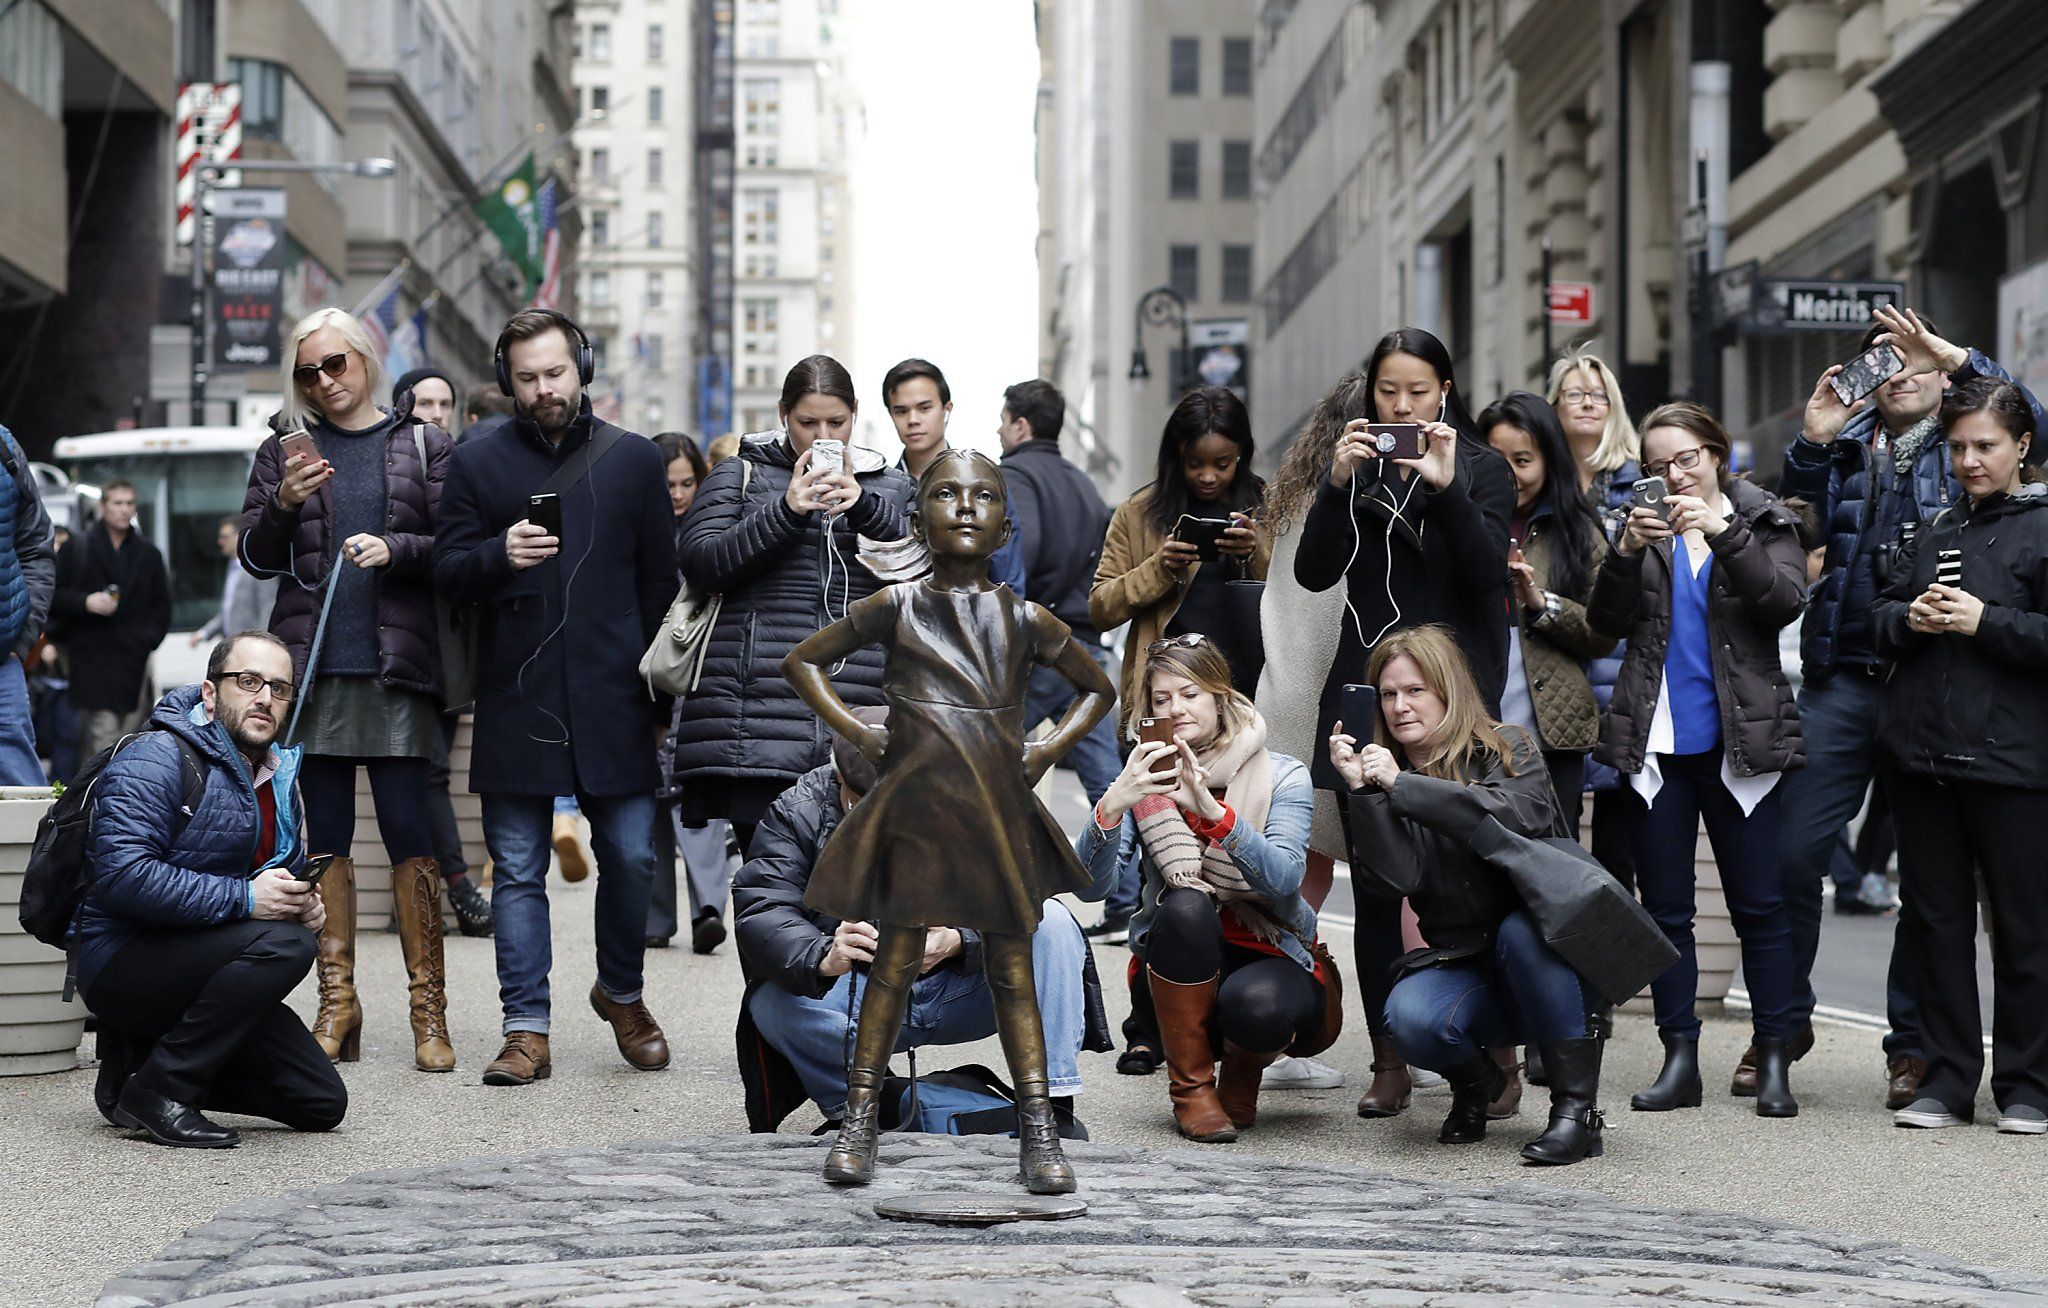 """Mayor Bill de Blasio appeared with the """"Fearless Girl"""" statue on Monday on the lower Manhattan traffic median where the two bronze figures face each other.  On Monday, Rep. Carolyn Maloney, D-N.Y., led a group of prominent women in front of City Hall to honor the artist, Kristen Visbal, and State Street Global Advisors, the asset management firm that commissioned the work.  """"She was created to bring attention to the courage and unrealized power of women in so many fields, and she has…"""